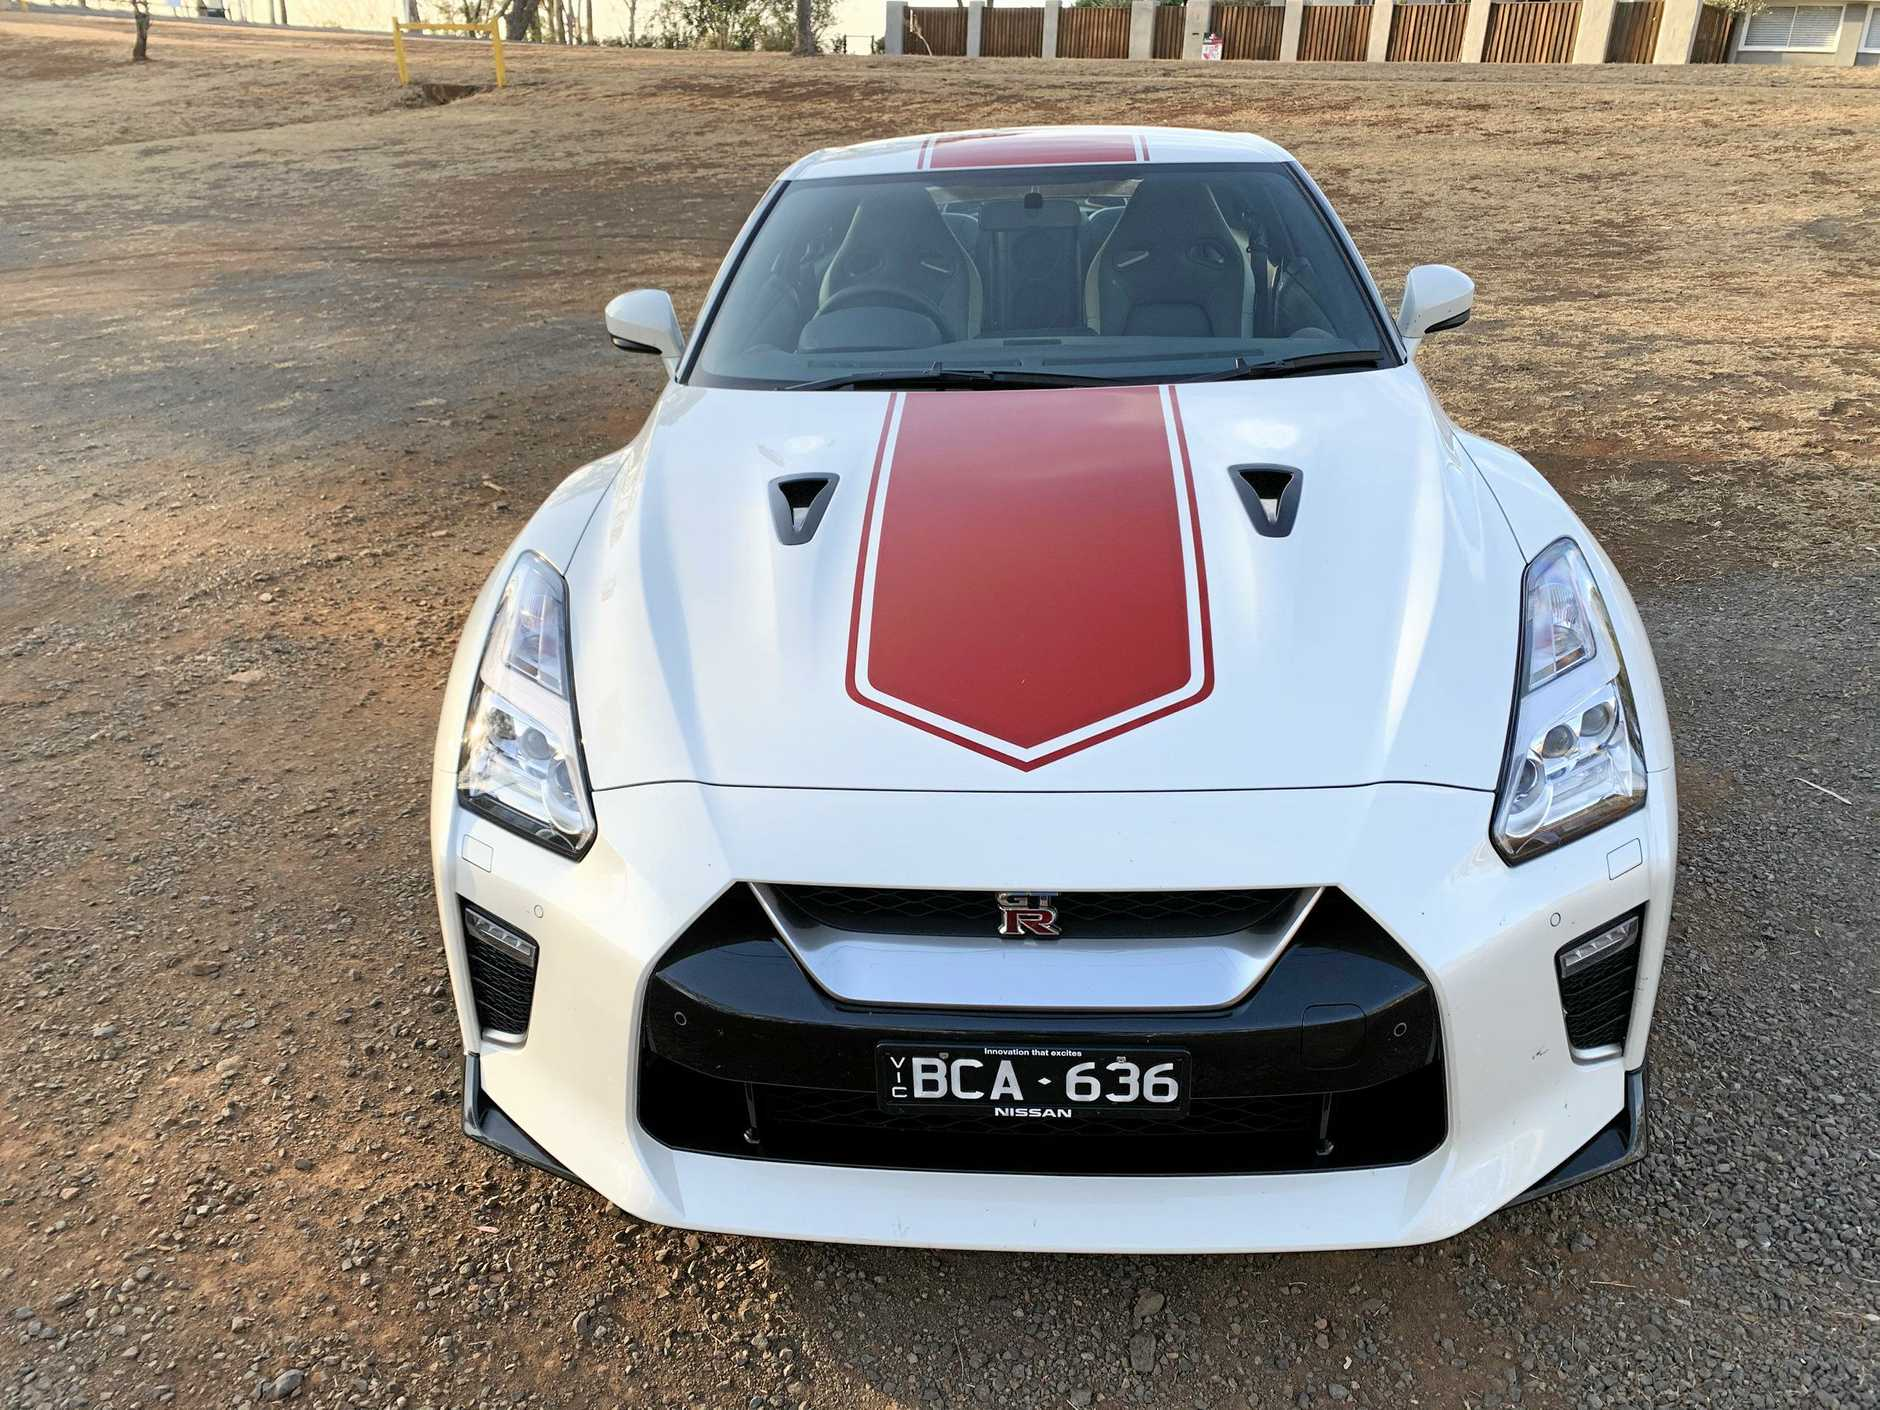 The 50 Anniversary edition of the Nissan GT-R.